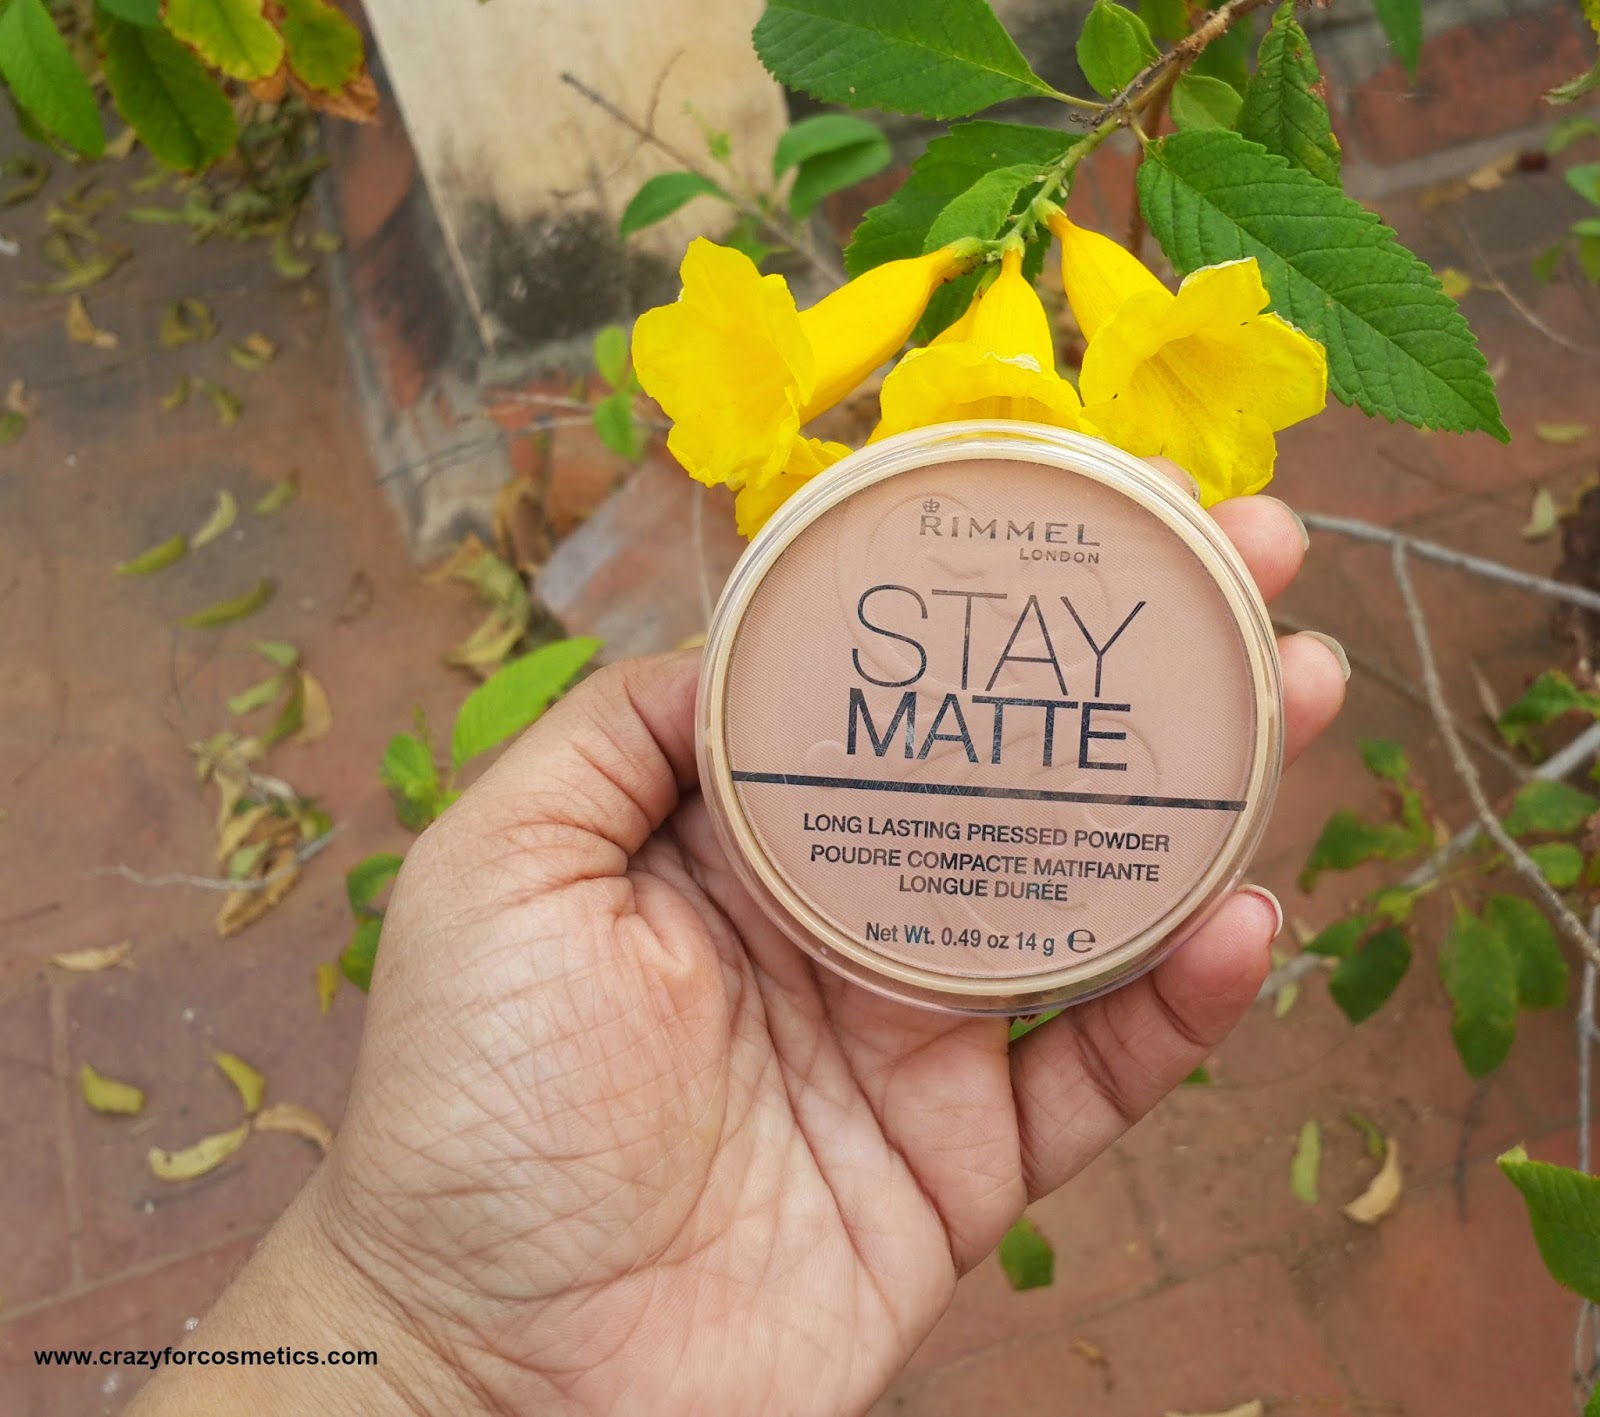 Rimmel London Stay Matte Pressed Powder - 007 Mohair Review & Swatches